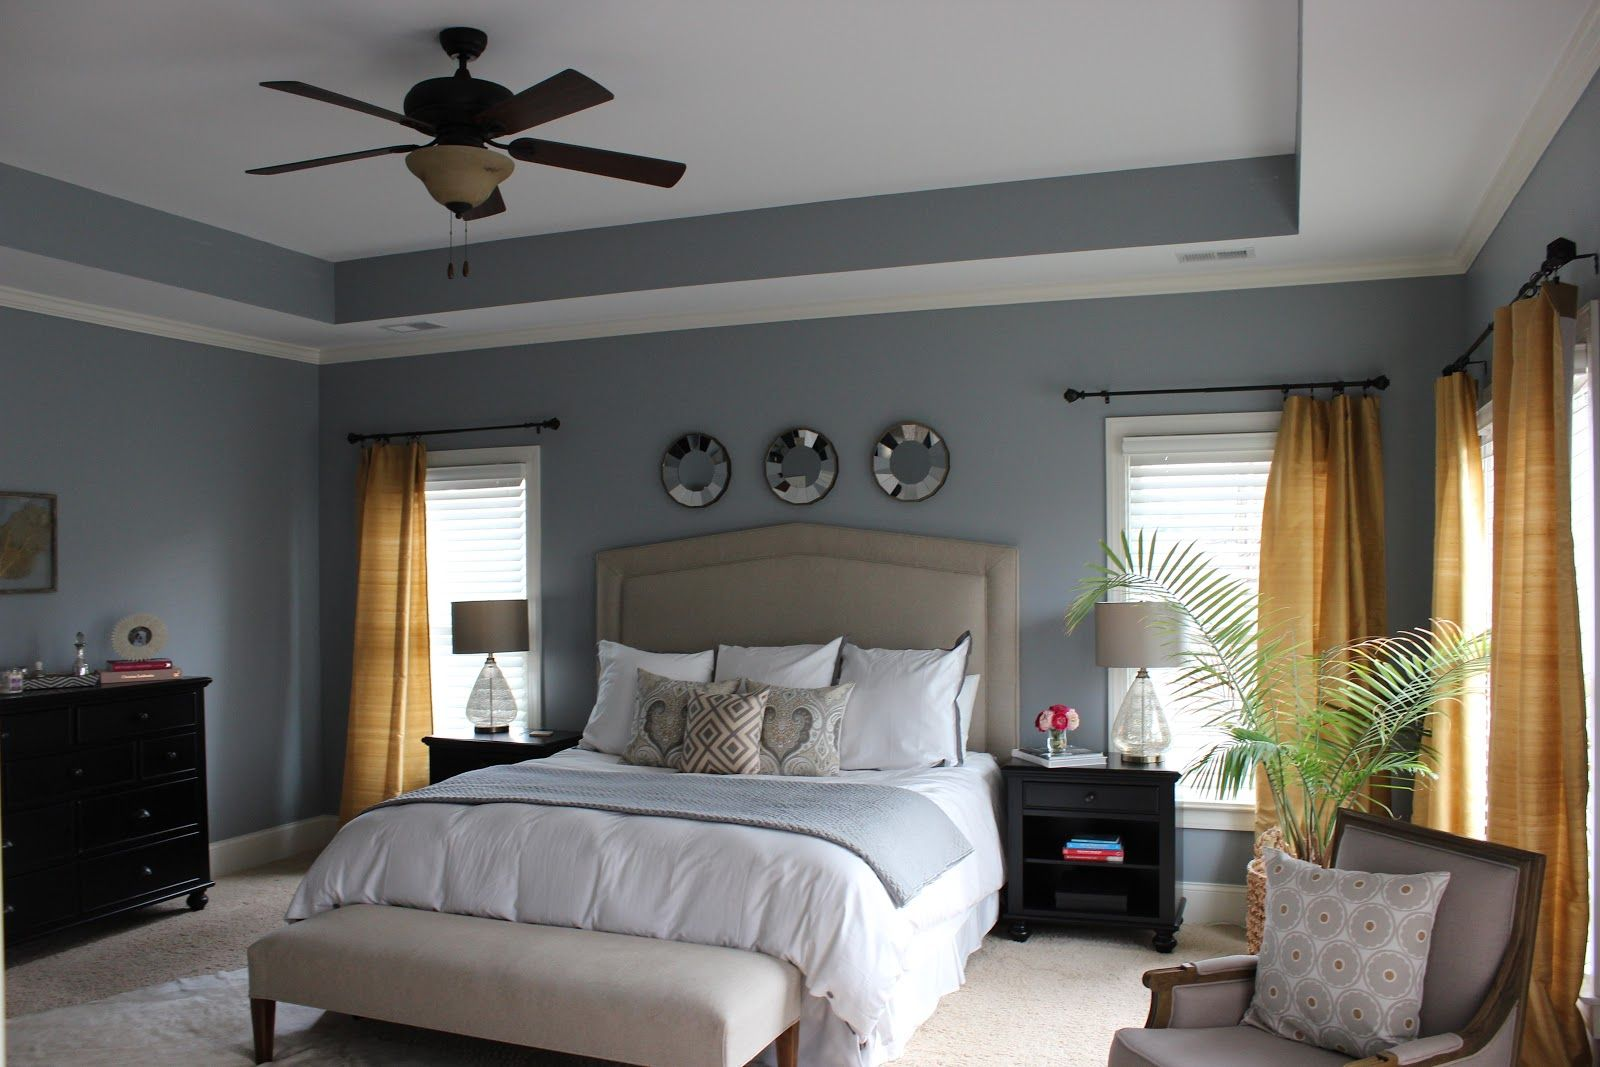 Benjamin moore gull wing grey walls great master bedroom Bedroom colors and ideas